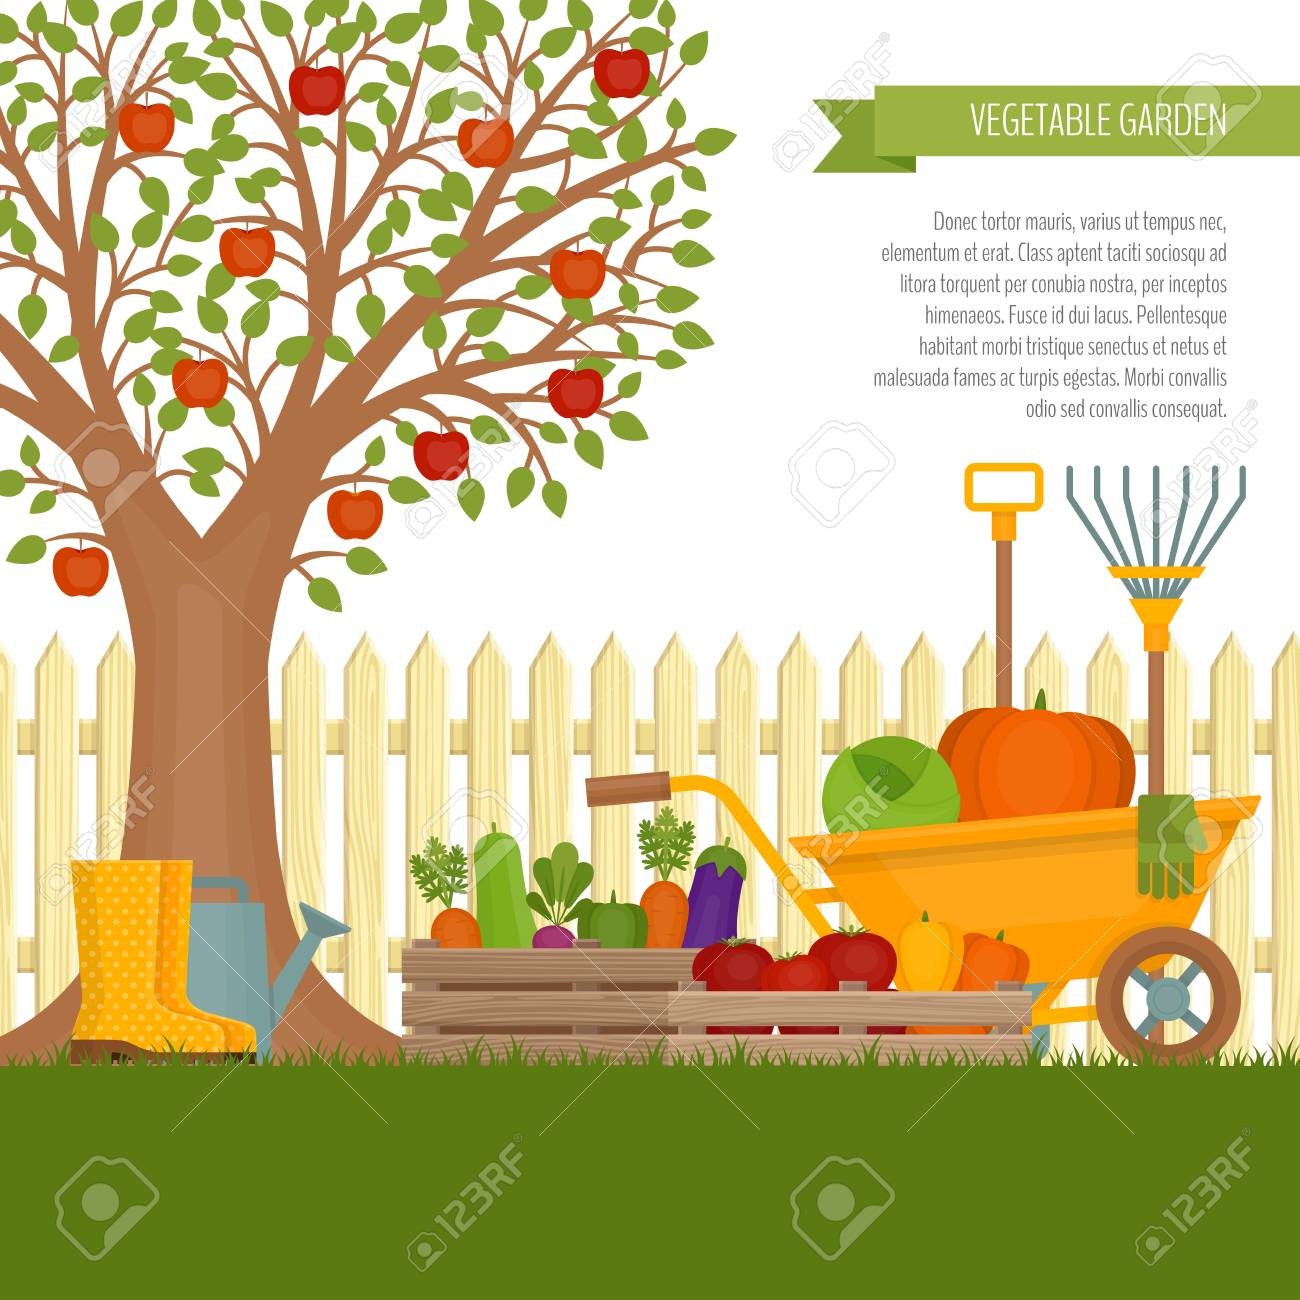 Vegetable Garden Concept Of Gardening Banner With Vegetable Royalty Free Cliparts Vectors And Stock Illustration Image 87429798